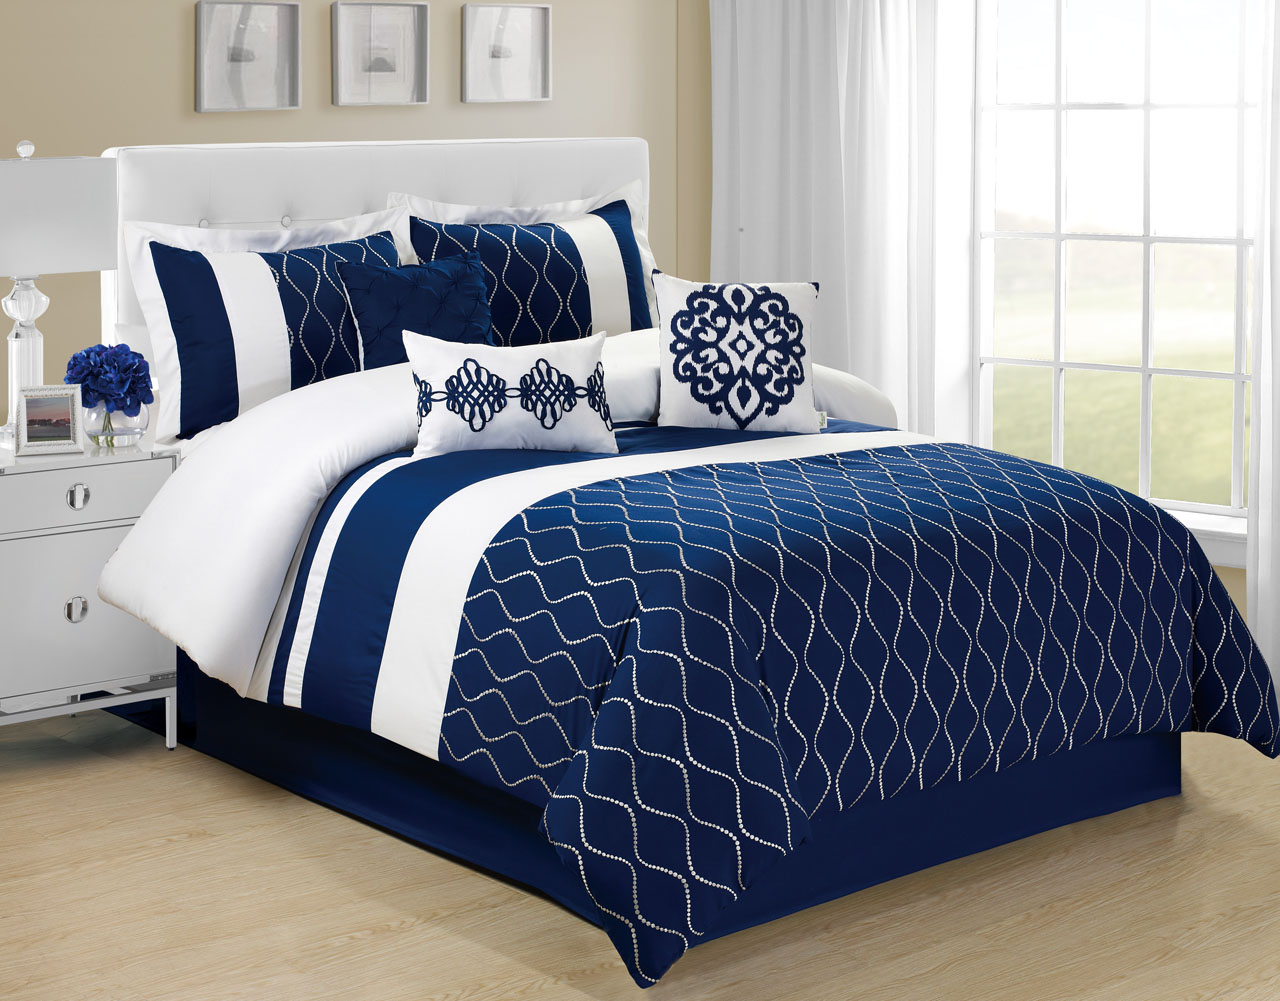 Navy Blue Comforter | Bedspreads at Target | Target Bed Sets